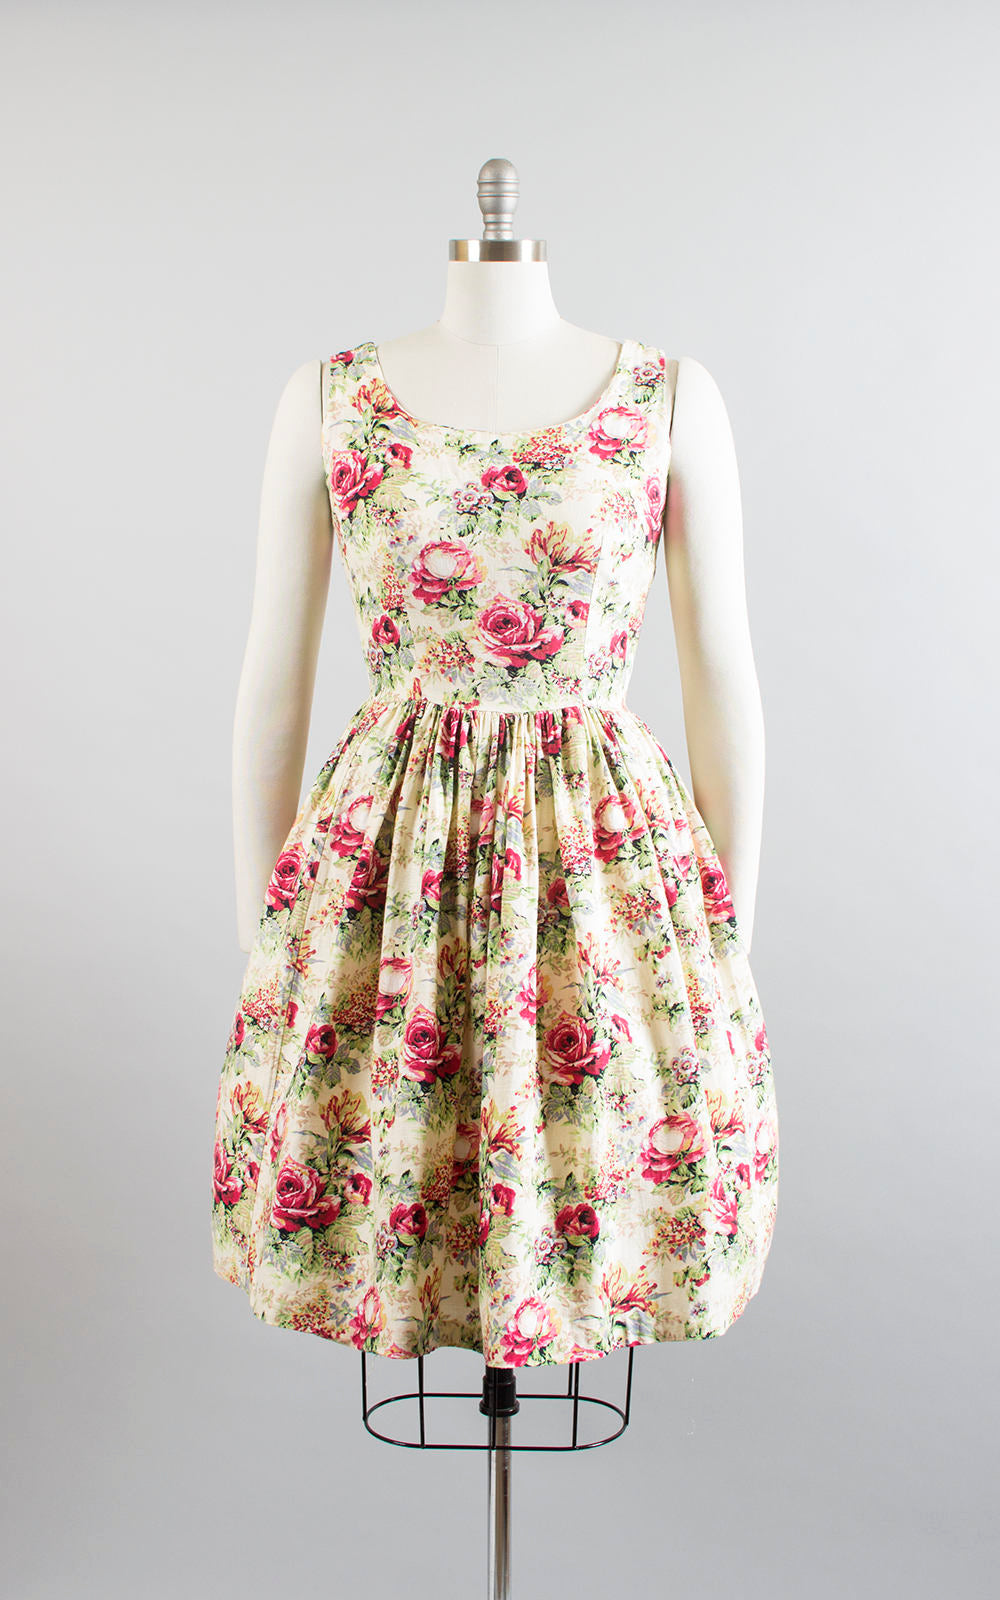 Vintage 1950s Dress | 50s Rose Floral Cotton Sundress Full Skirt Cream Day Dress (small)